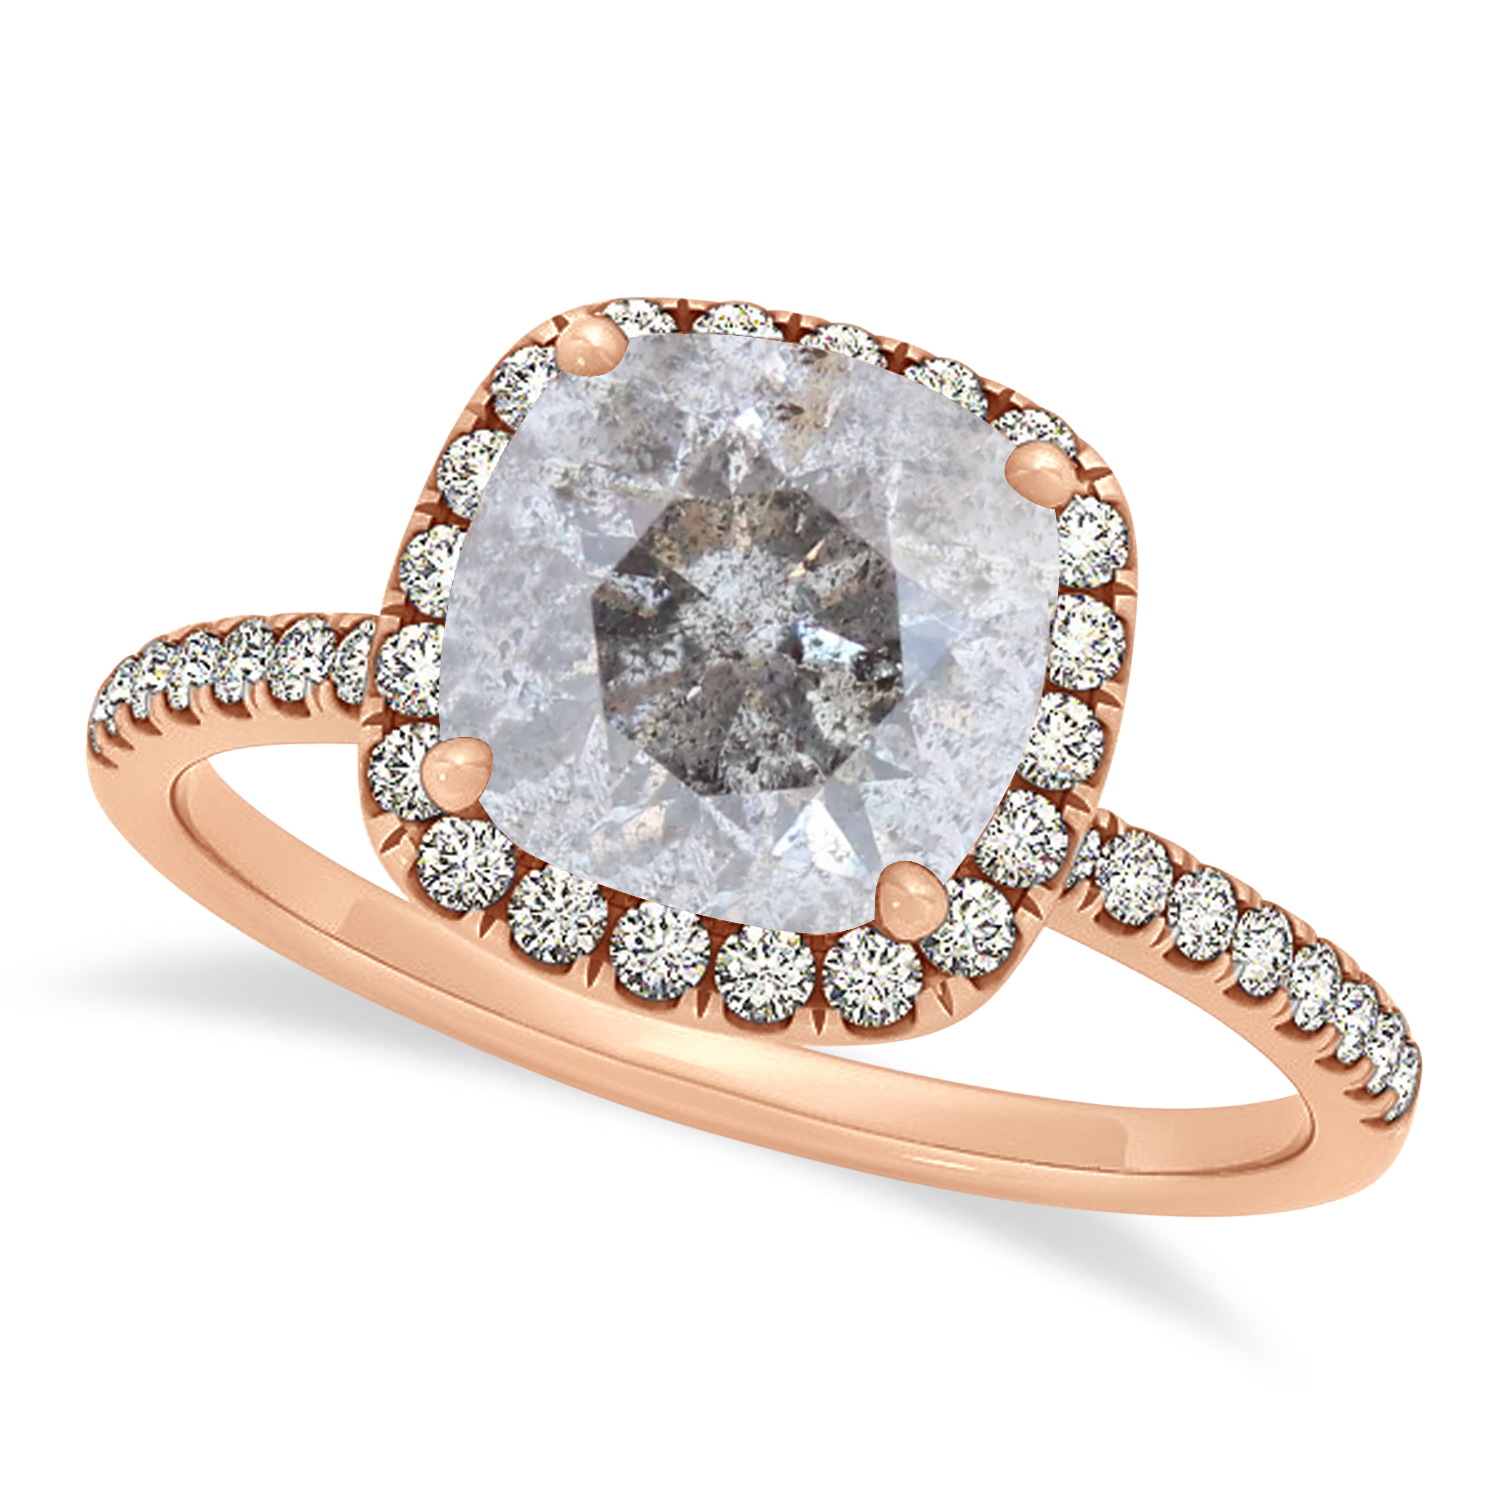 Cushion Salt & Pepper Diamond Halo Engagement Ring French Pave 14k R. Gold 2.00ct